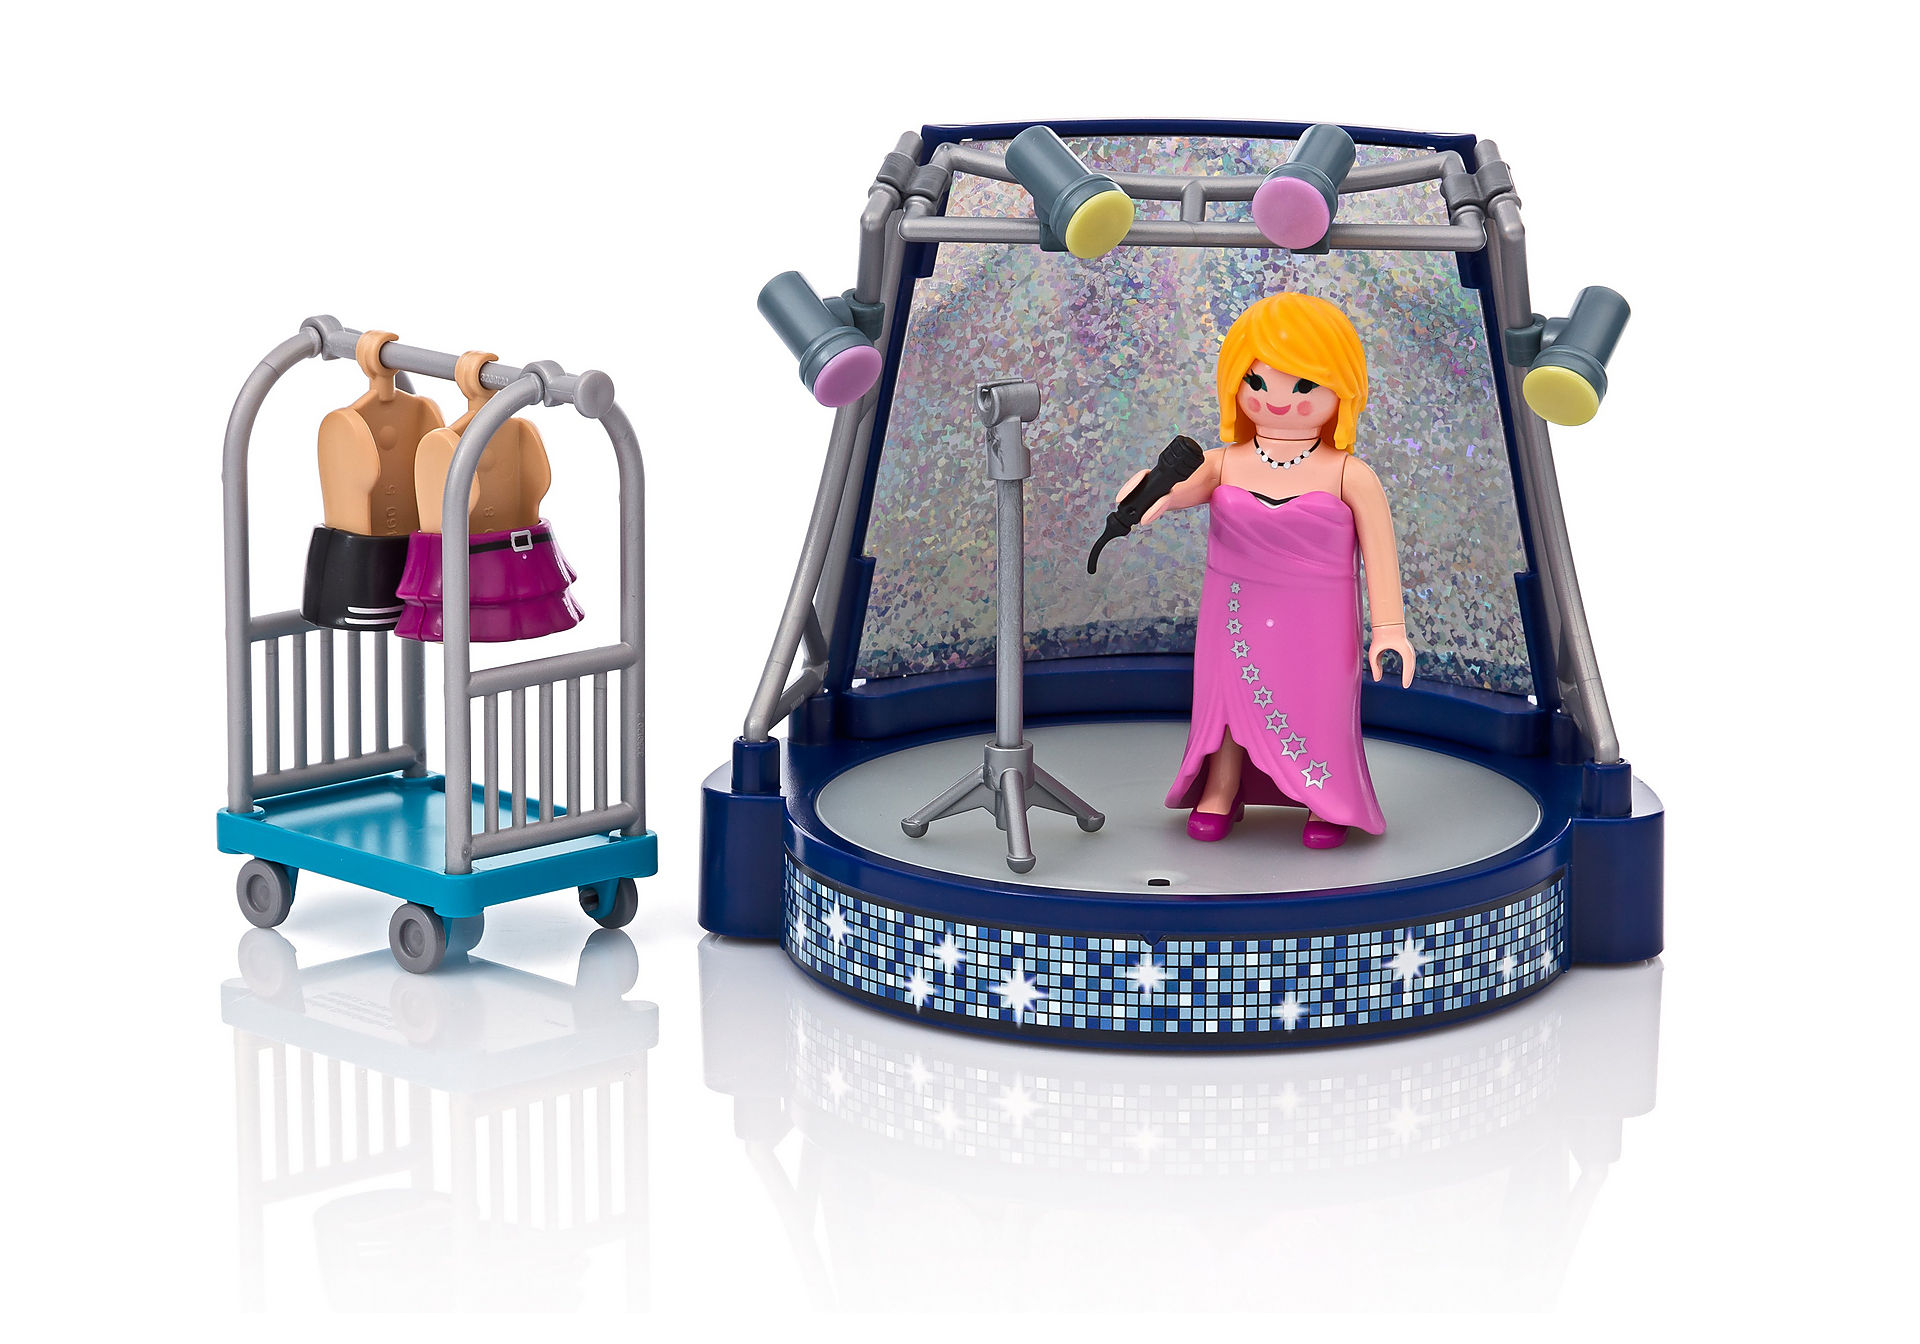 360degree image 2